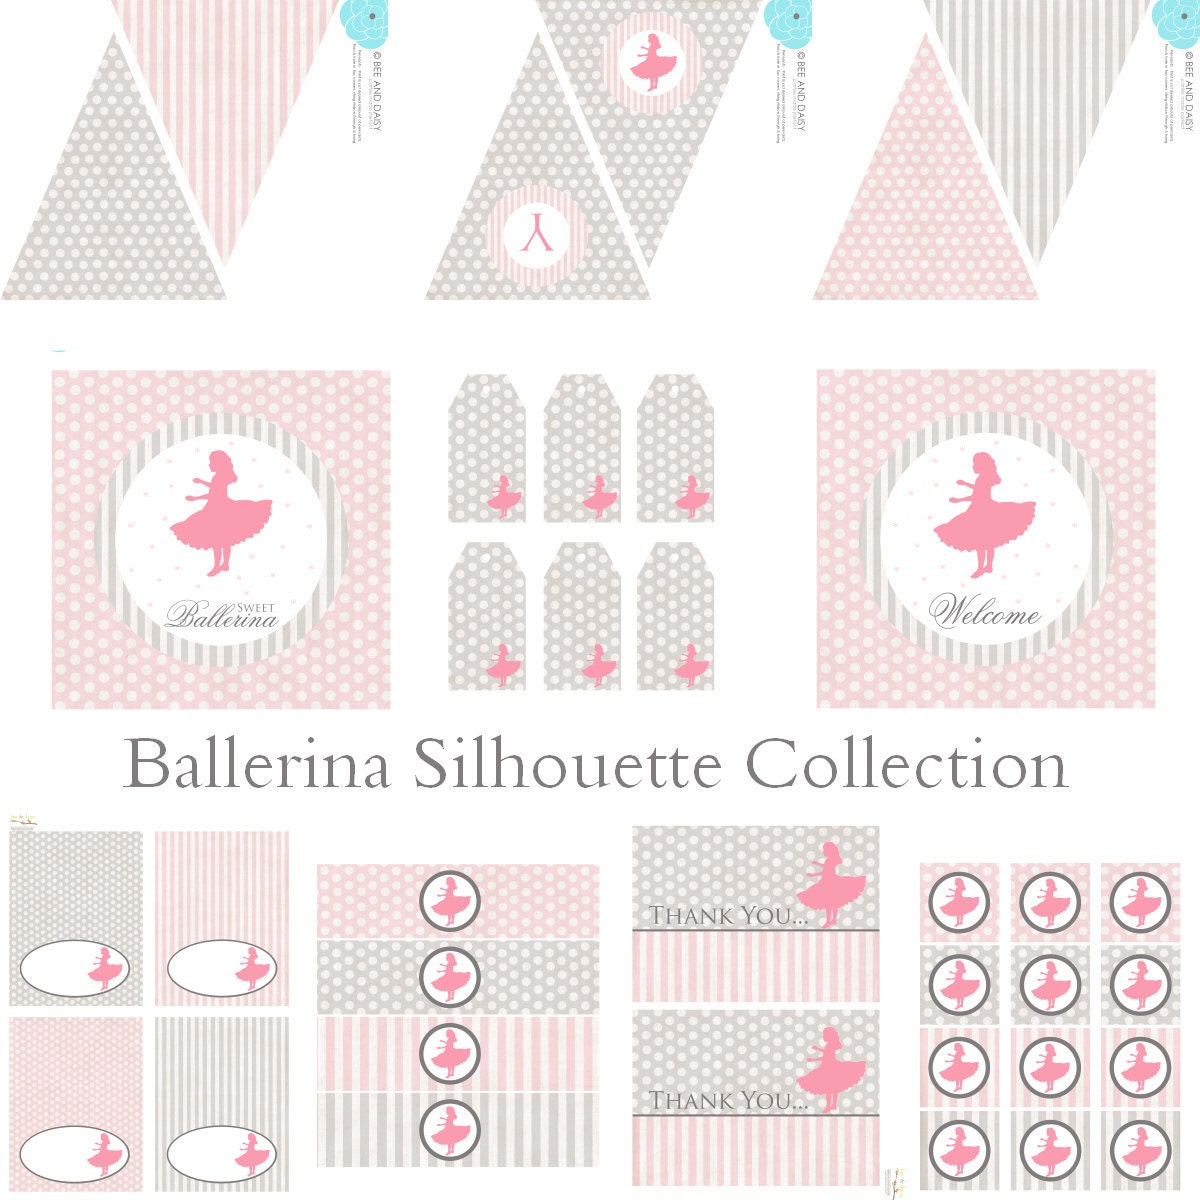 Vintage Ballet Silhouette Decorations for Birthday by BeeAndDaisy